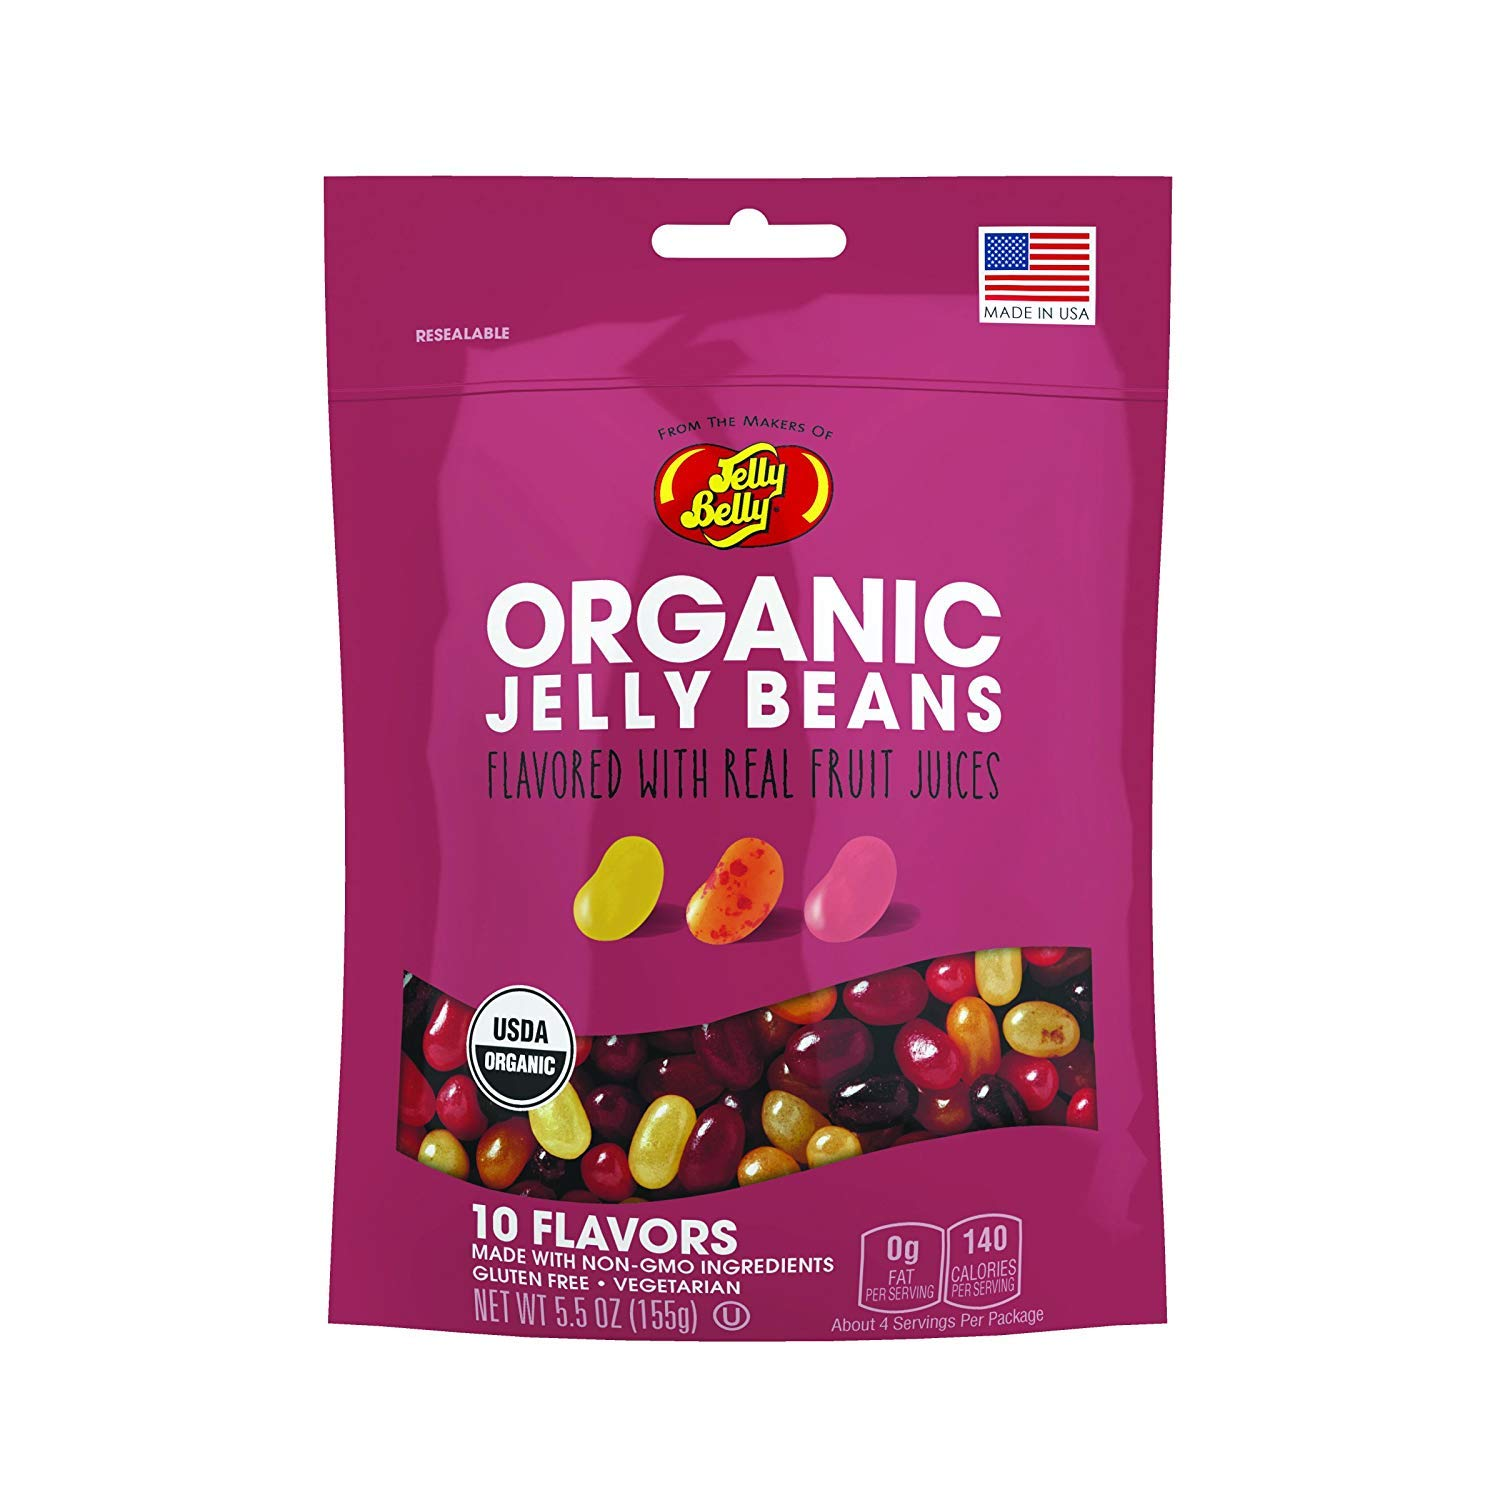 Jelly Belly Organic Jelly Beans, 10 Fruit Flavors, 5.5-oz by Jelly Belly